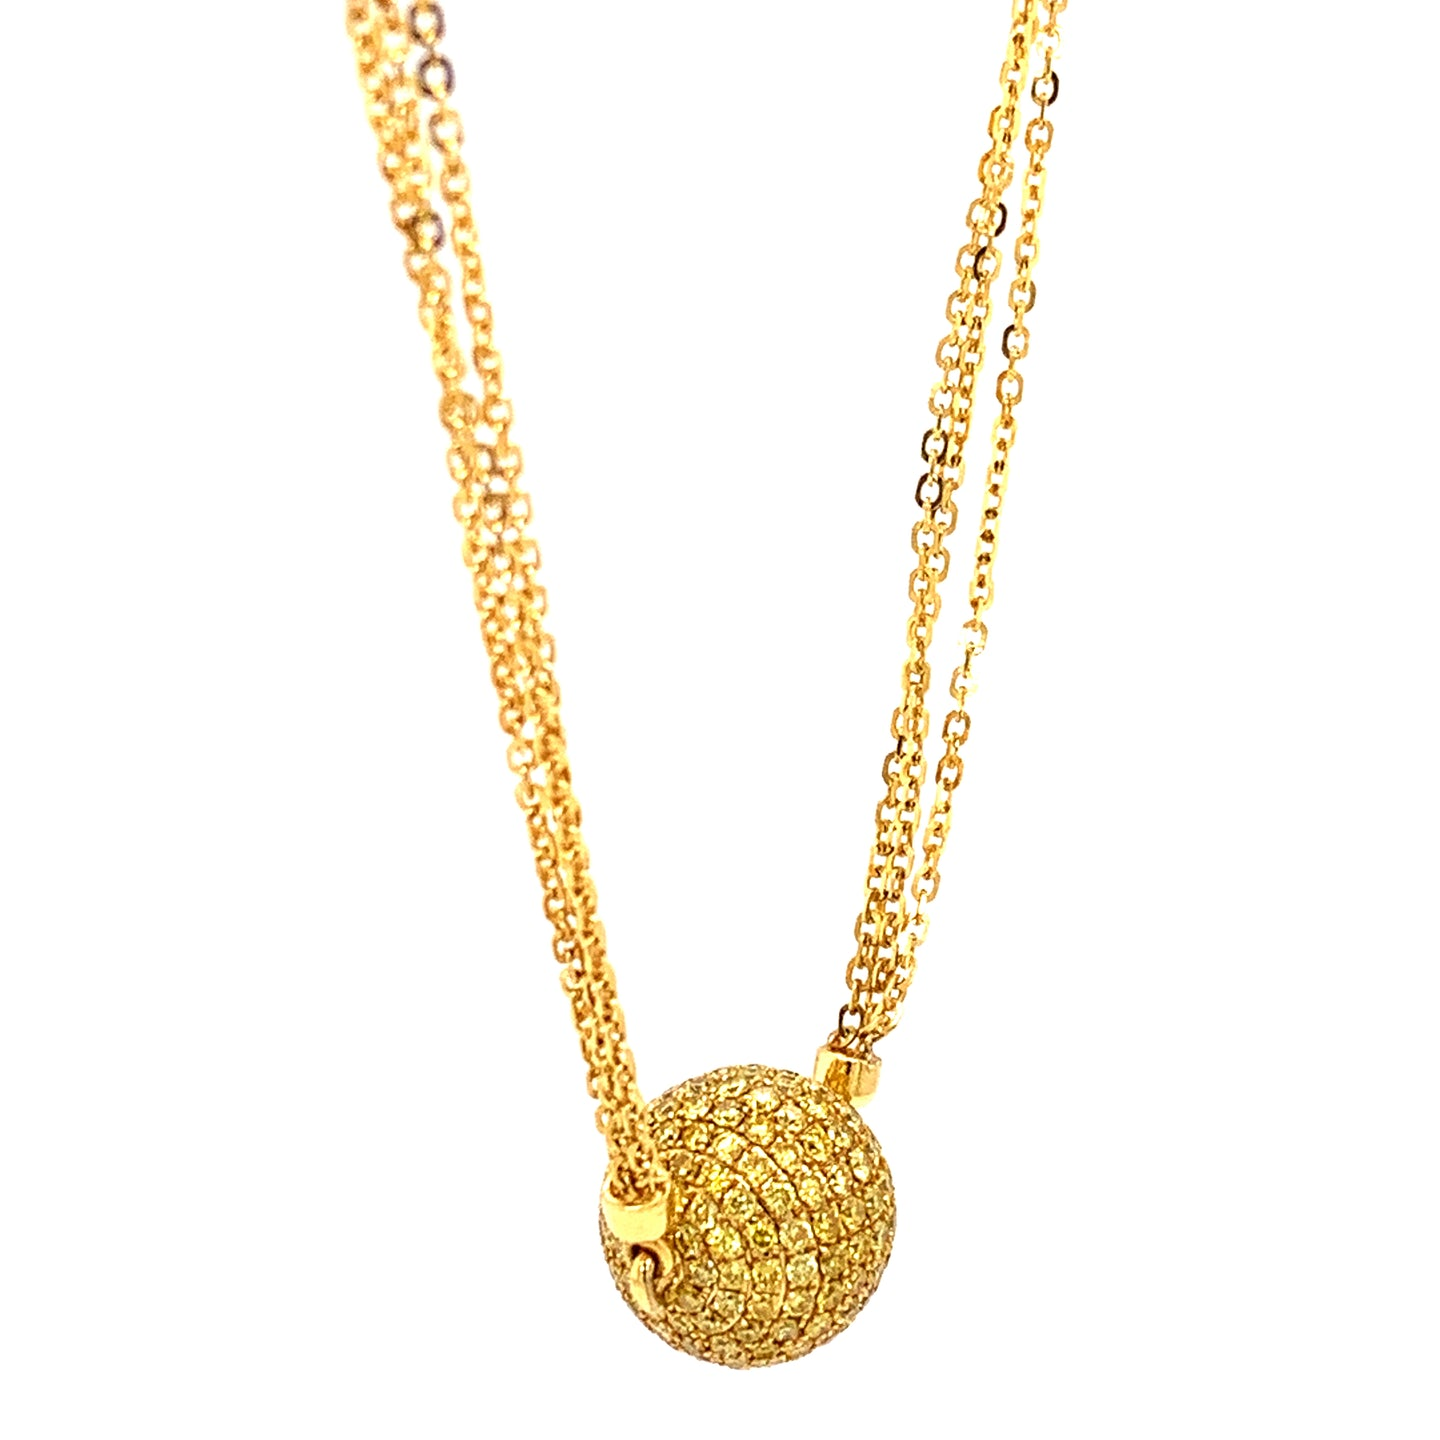 18K Yellow Gold Pave Diamond Necklace